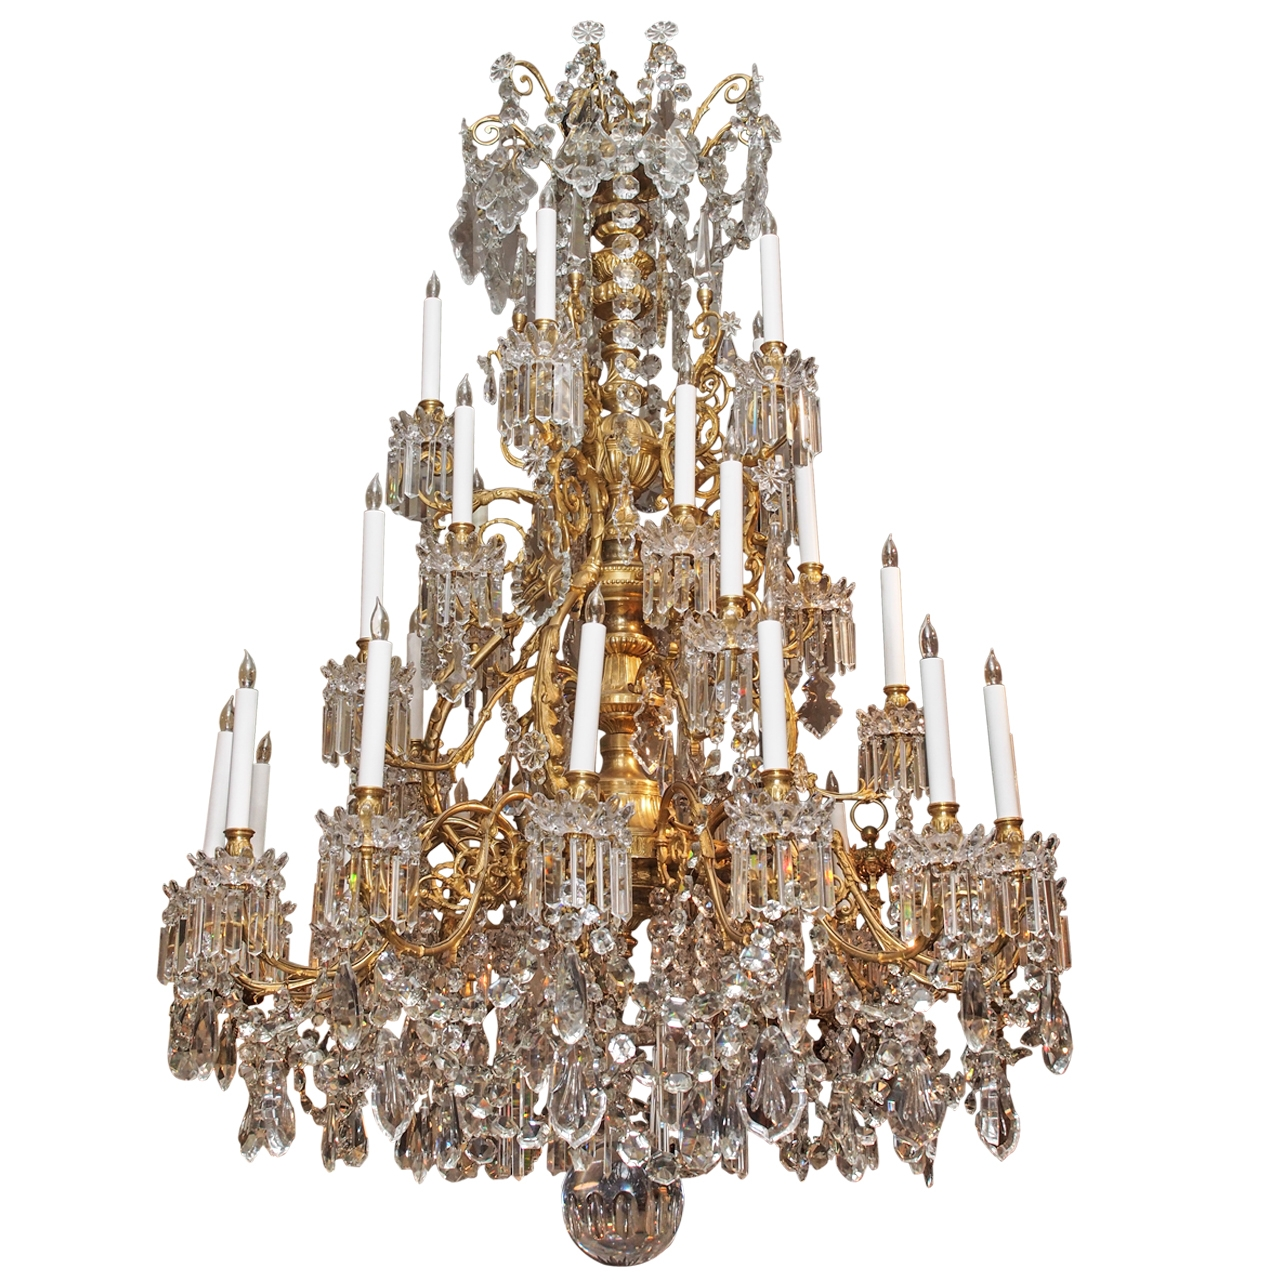 Magnificent Antique French Baccarat Crystal Chandelier Circa 1850 Pertaining To Vintage French Chandeliers (#10 of 12)